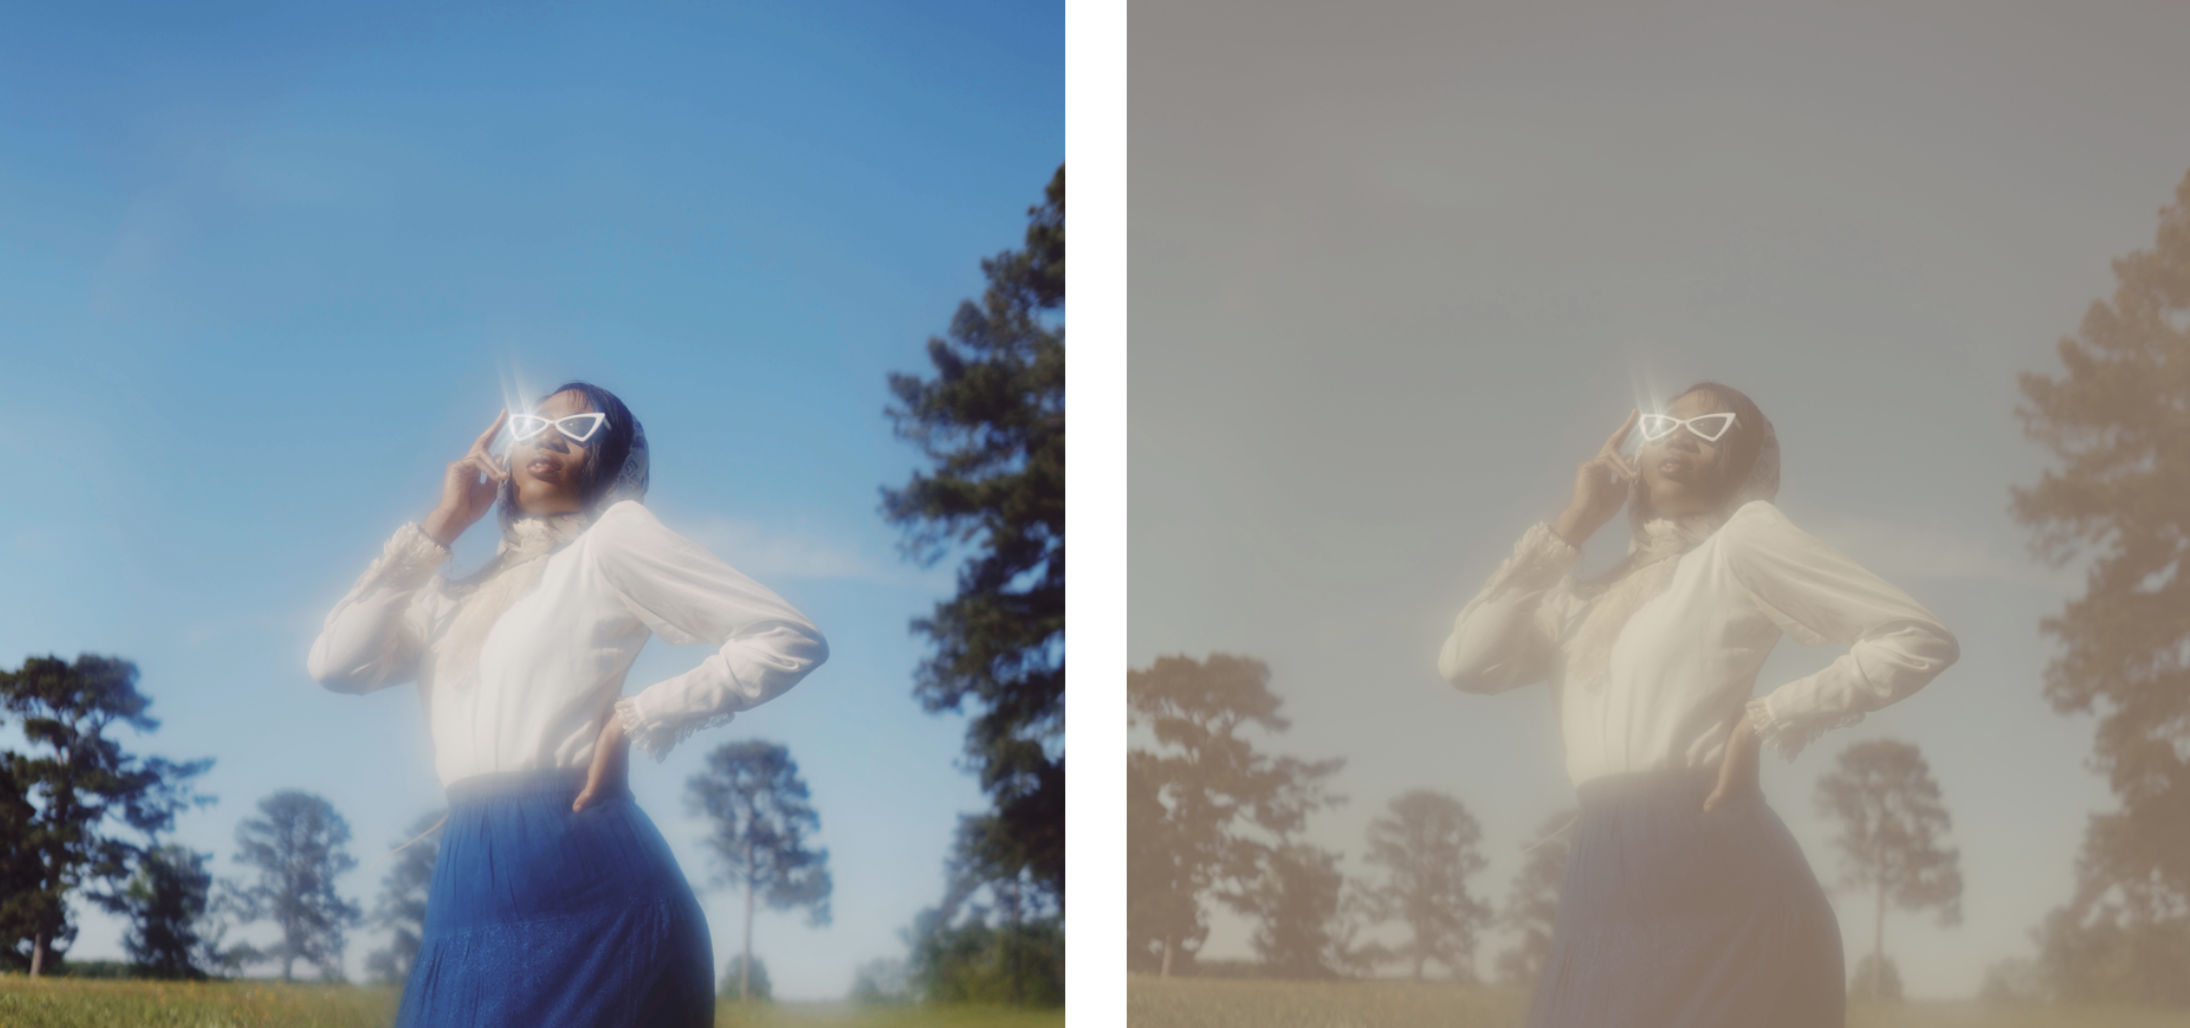 Introducing KP6 and KP7: New Film X Presets   July 24, 2019 — Kodak Portra 400VC (KP6) and Kodak Portra 400UC (KP7) were both discontinued as the film medium faded, but their timeless tones and hues stayed in the minds of those who created with them. With this release, VSCO members can bring back looks that were once left behind.